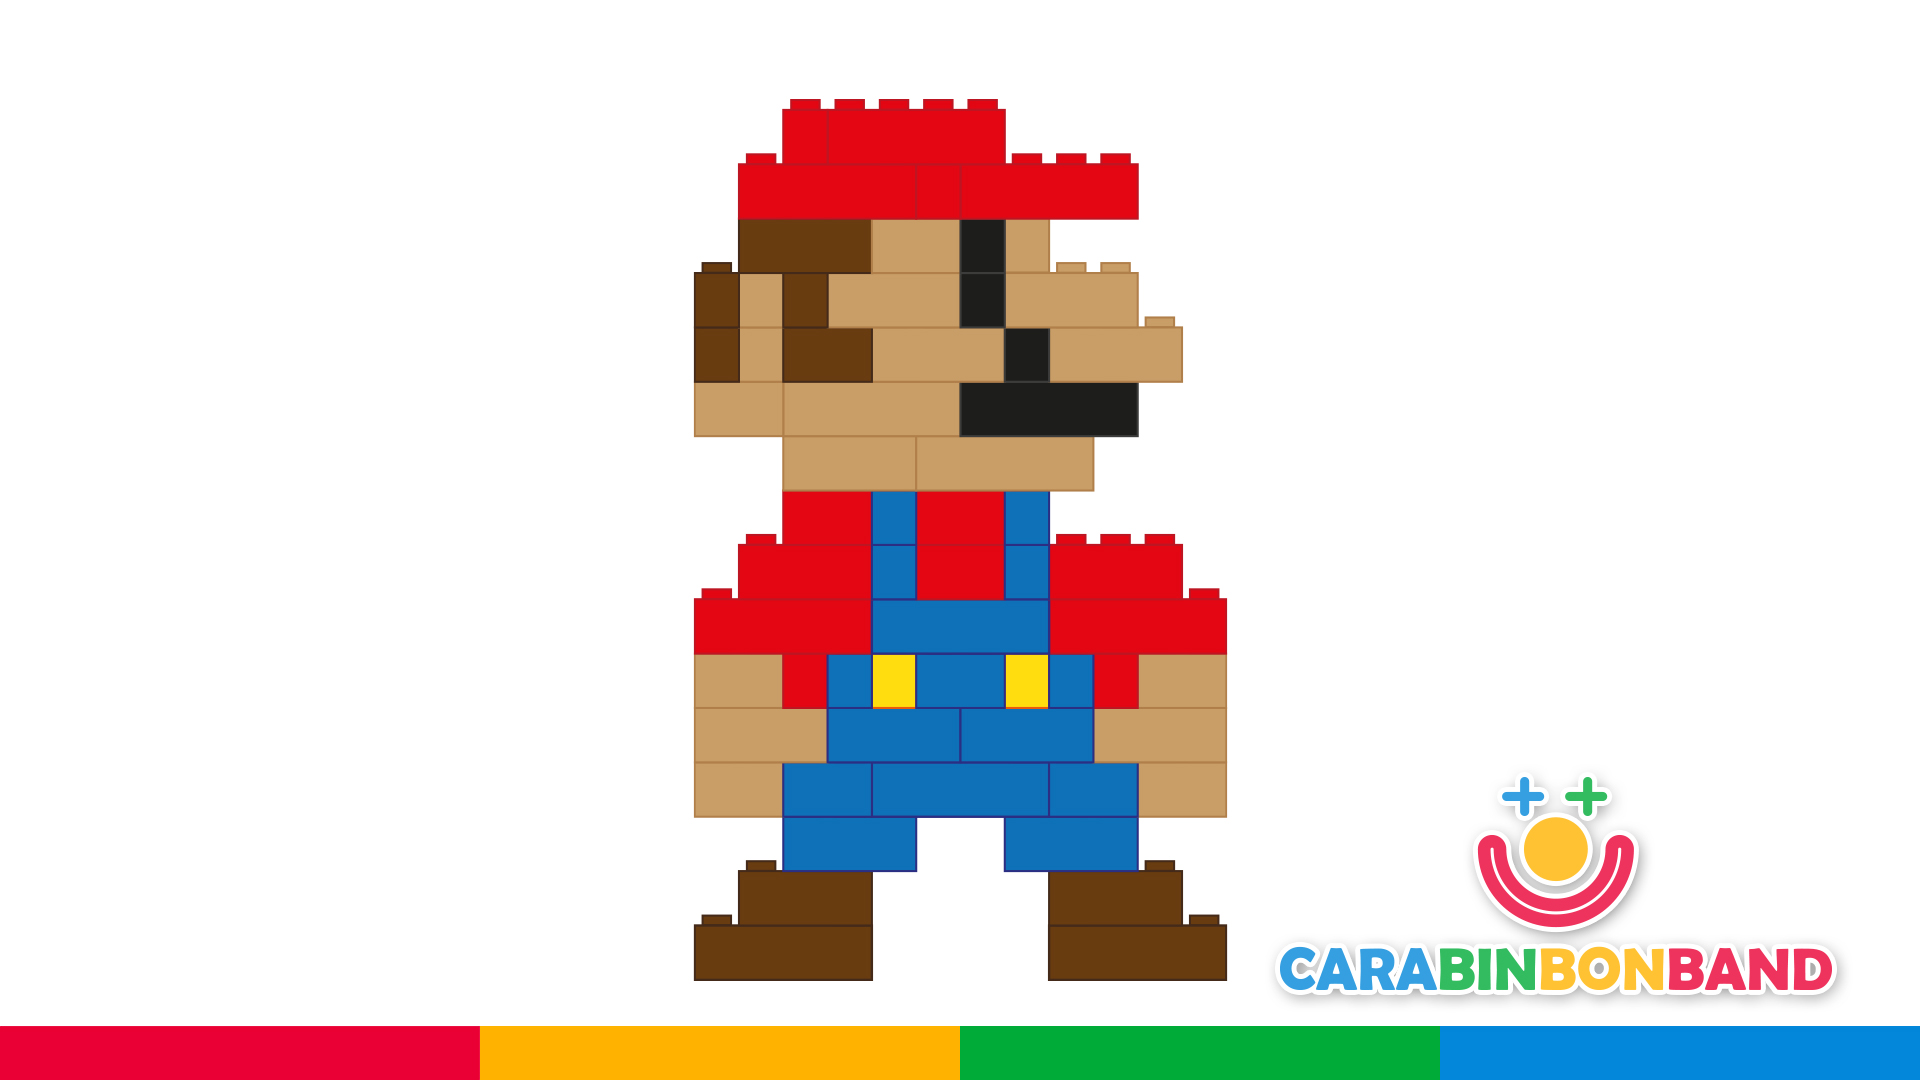 Easy LEGO games for kids - how to make Mario Bros with LEGO blocks